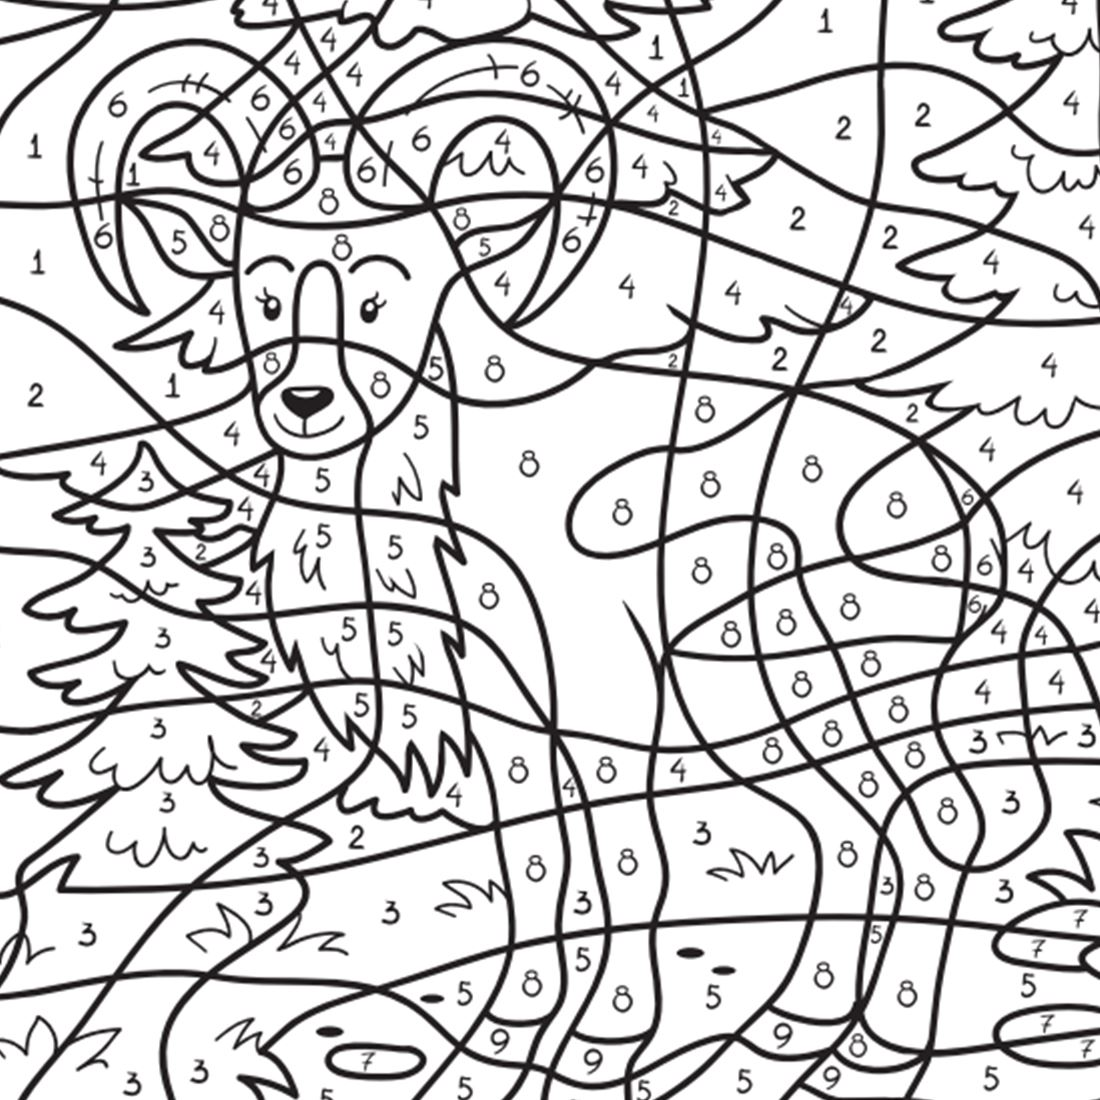 Coloring book drawing of an antelope